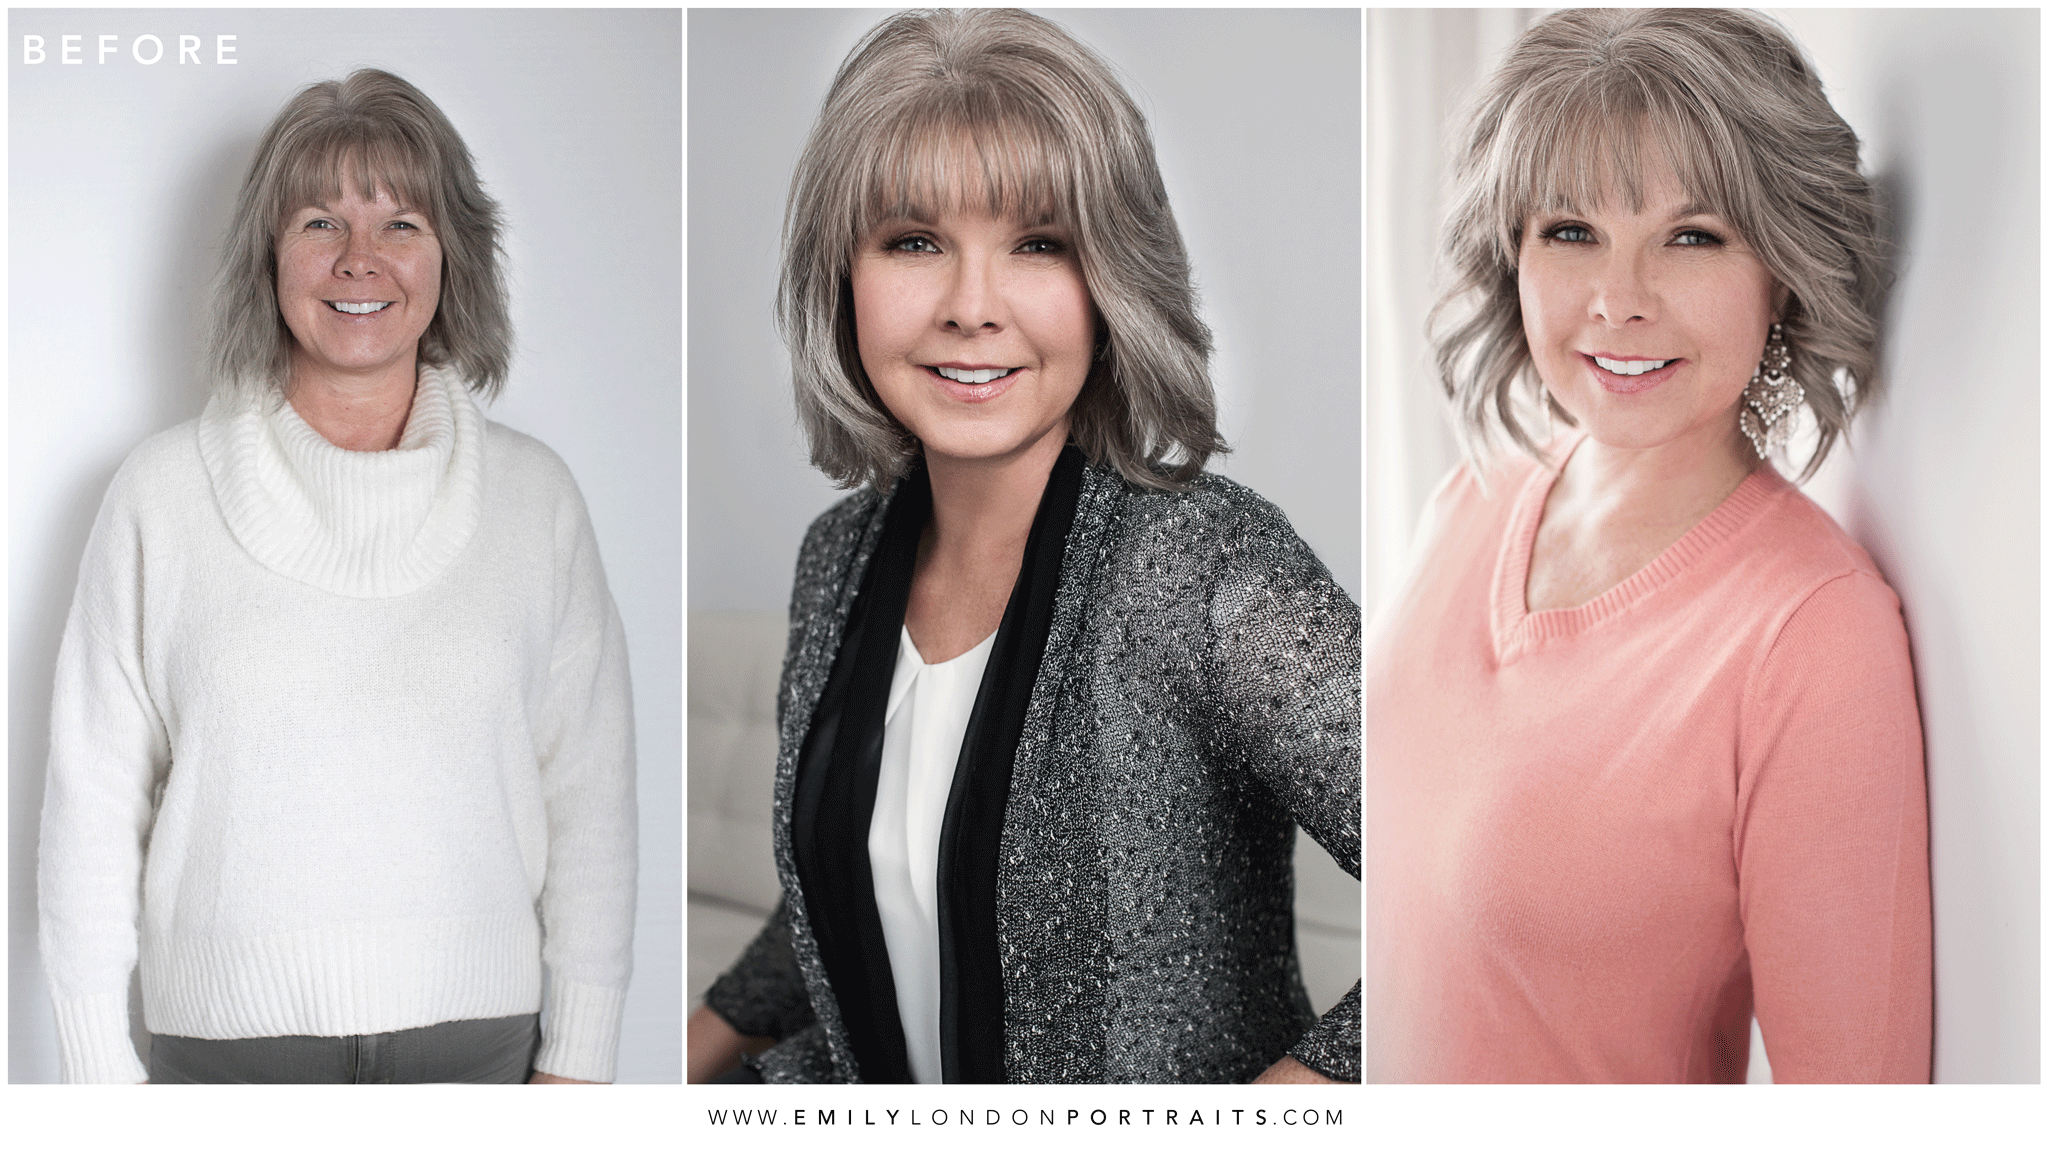 Same Day Transformation During a Photoshoot with Emily London Portraits in SLC Utah